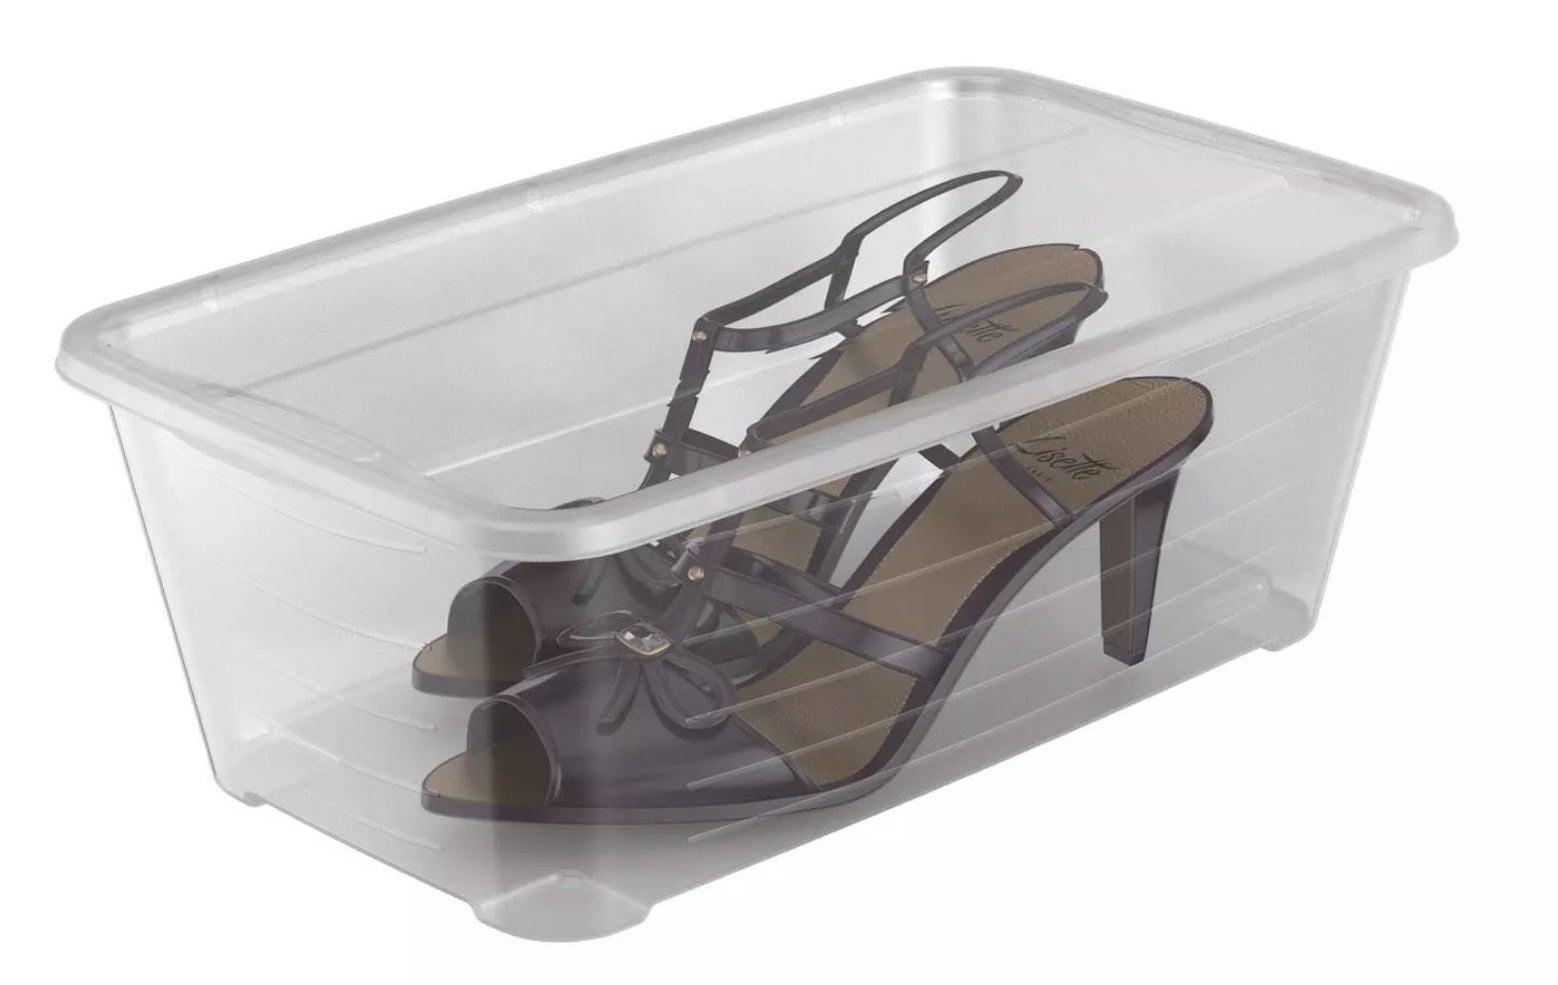 The shoe container